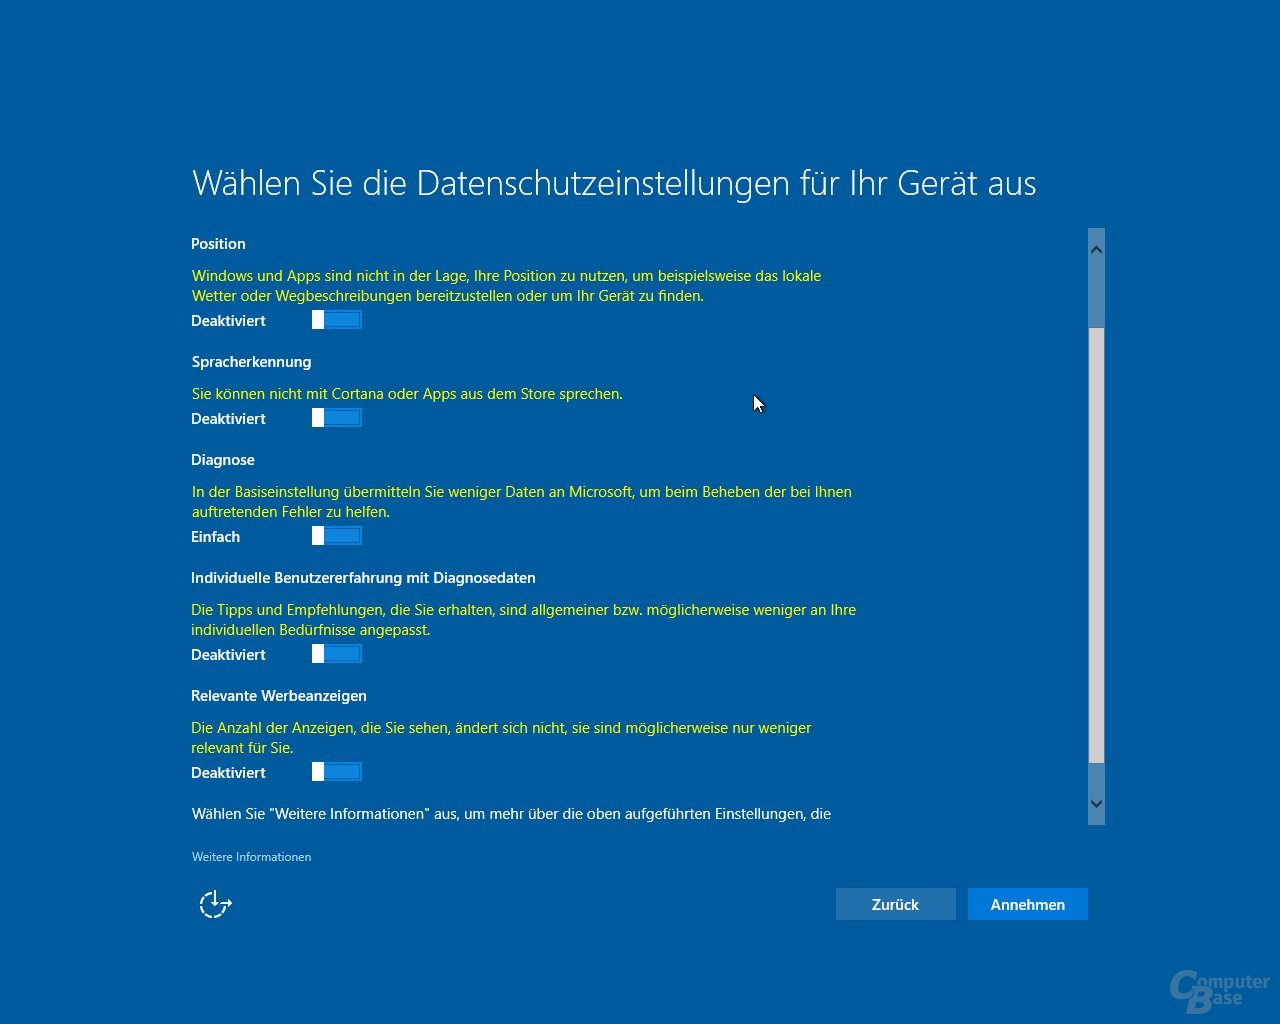 Windows 10 Creators Update: Datenschutz-Setup